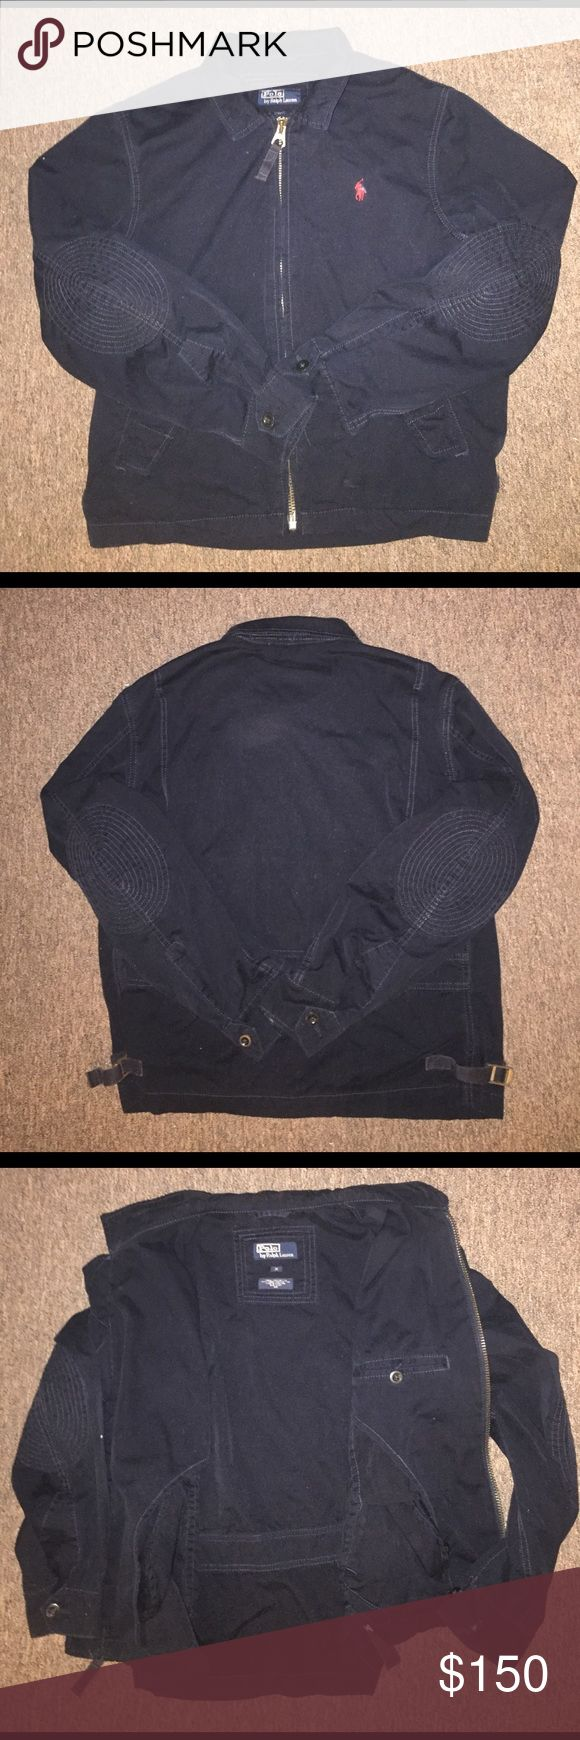 Old Vintage Polo Jacket Very good condition, Lightweight Jacket, 100% cotton Polo by Ralph Lauren Jackets & Coats Lightweight & Shirt Jackets